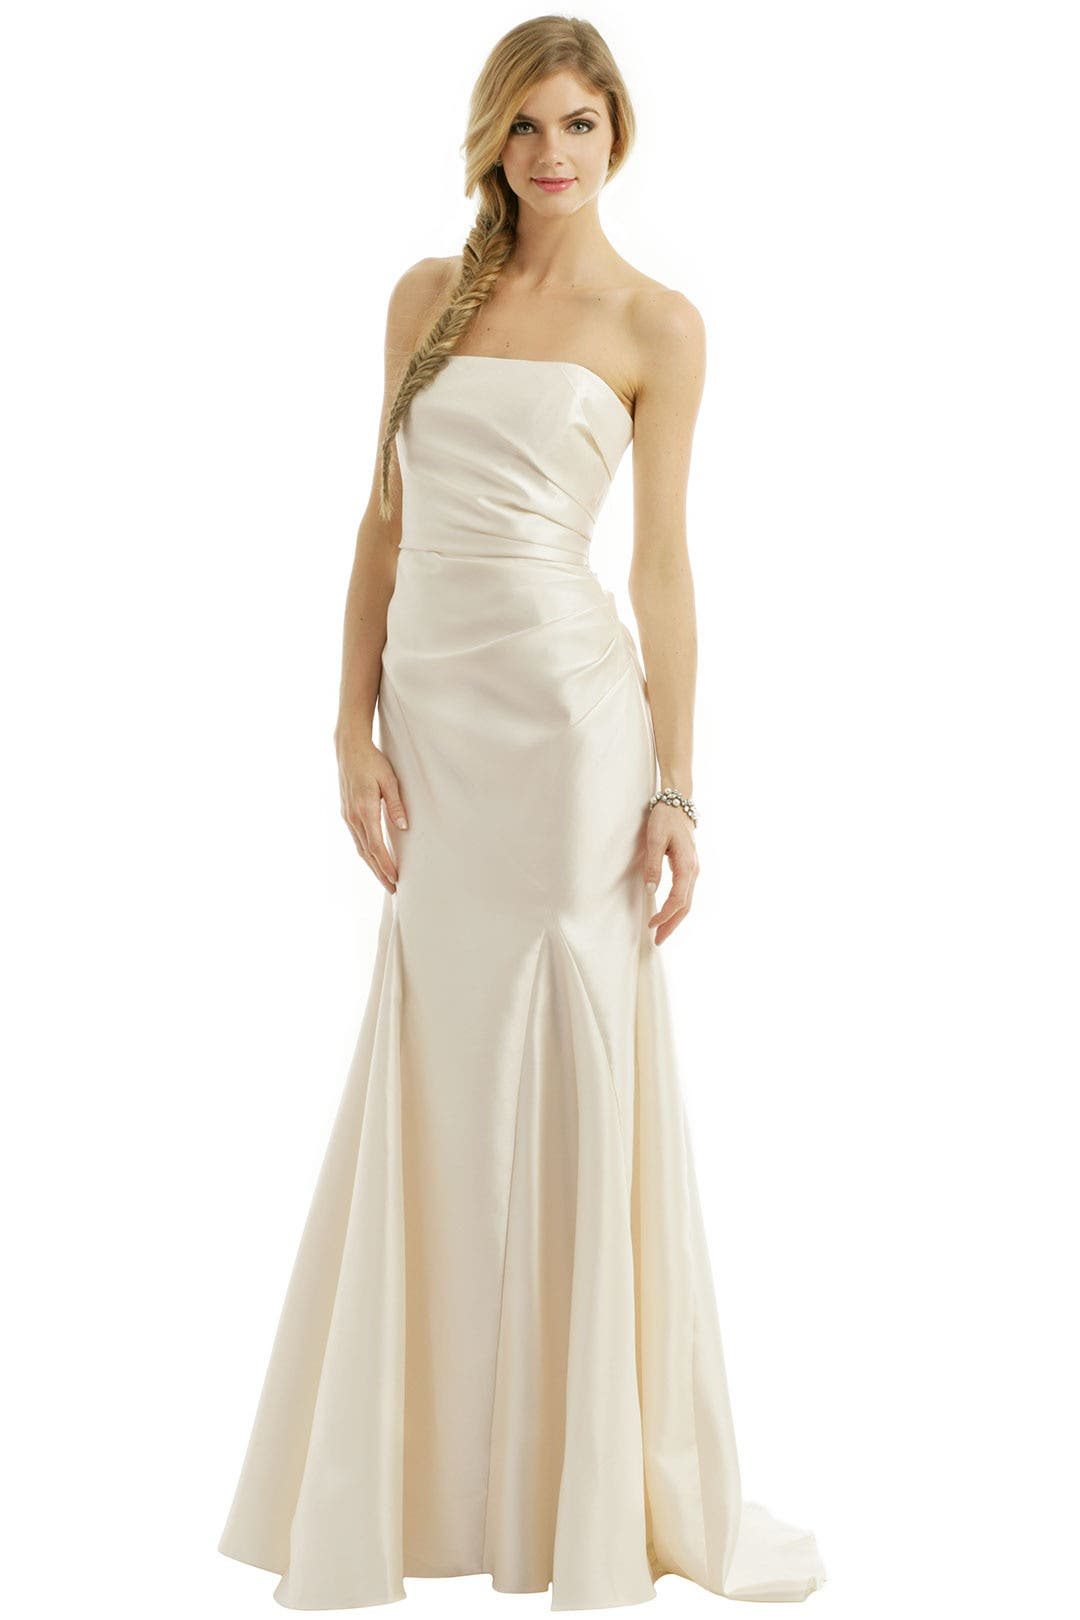 Ivory Dream Gown By Badgley Mischka For 150